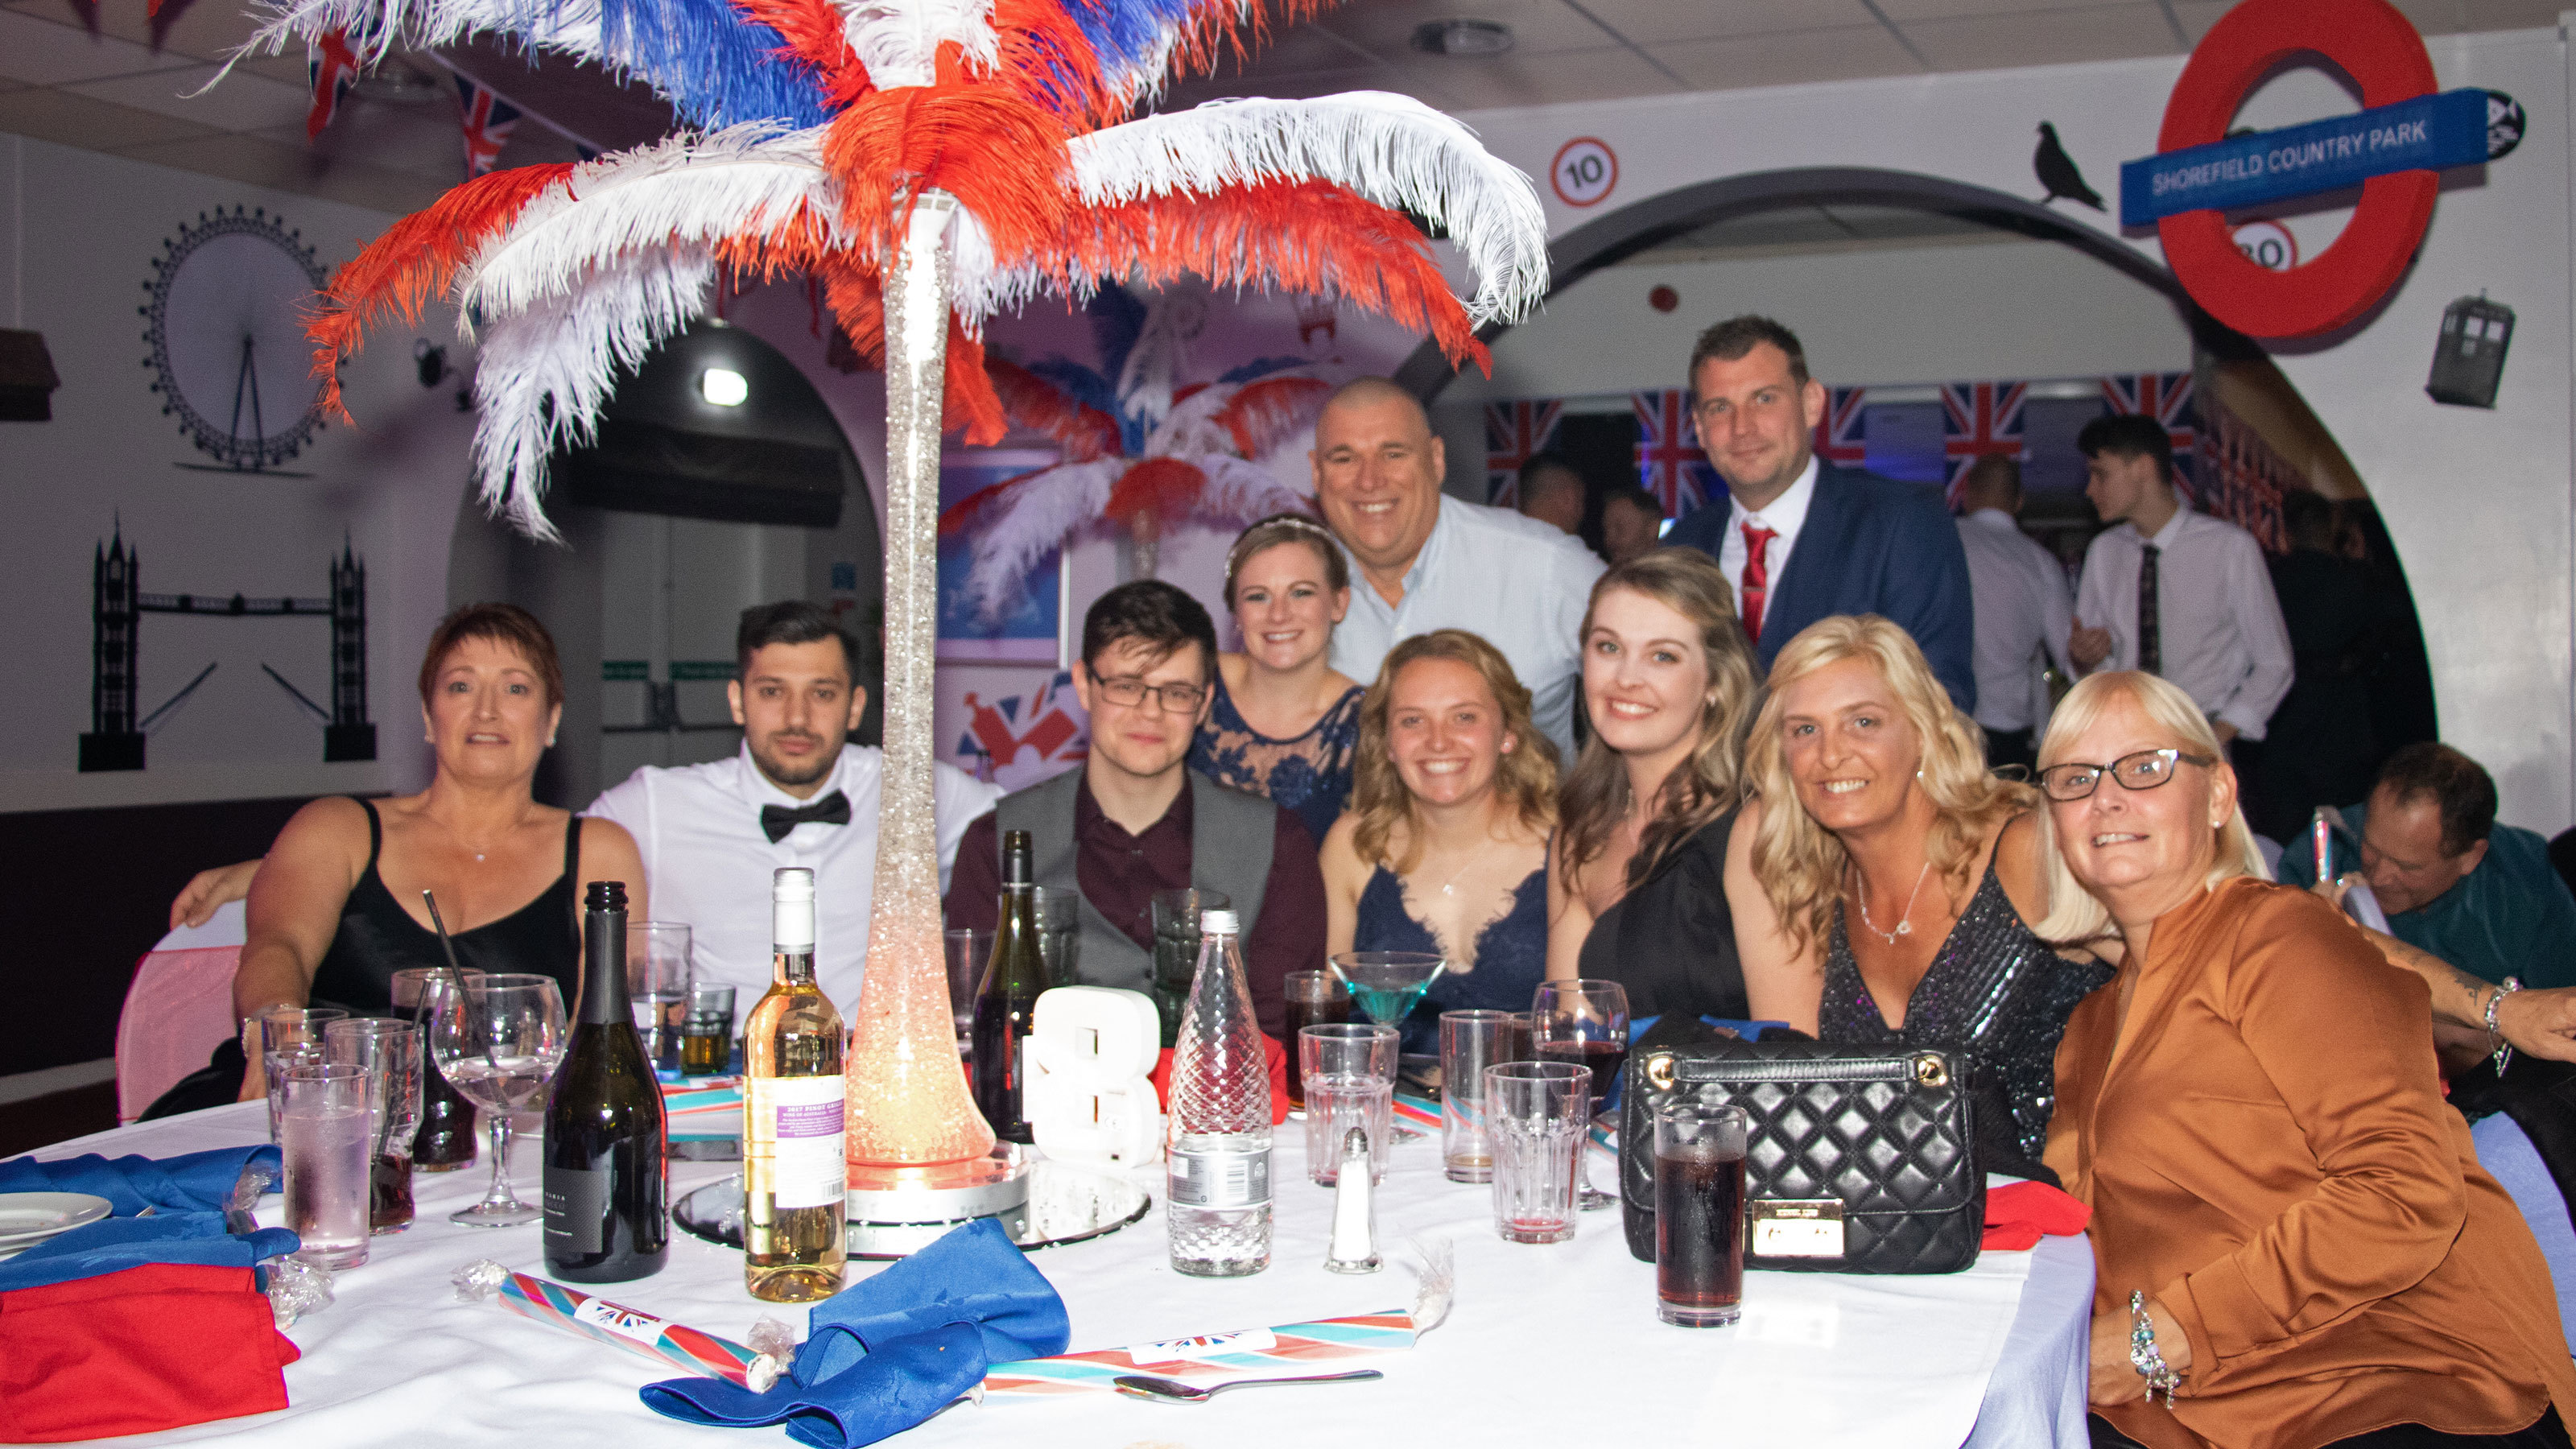 Staff-from-across-all-the-Shorefield-parks-celebrate-at-the-awards-night